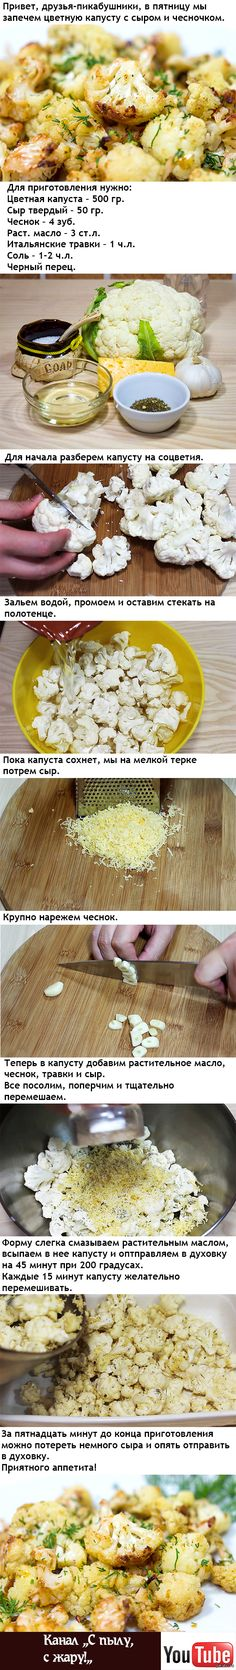 Baked cauliflower with cheese and garlic . - Baked Cauliflower with Cheese and Garlic Raw Food Recipes, Veggie Recipes, Salad Recipes, Vegetarian Recipes, Snack Recipes, Cooking Recipes, Healthy Recipes, Top Salad Recipe, Good Food